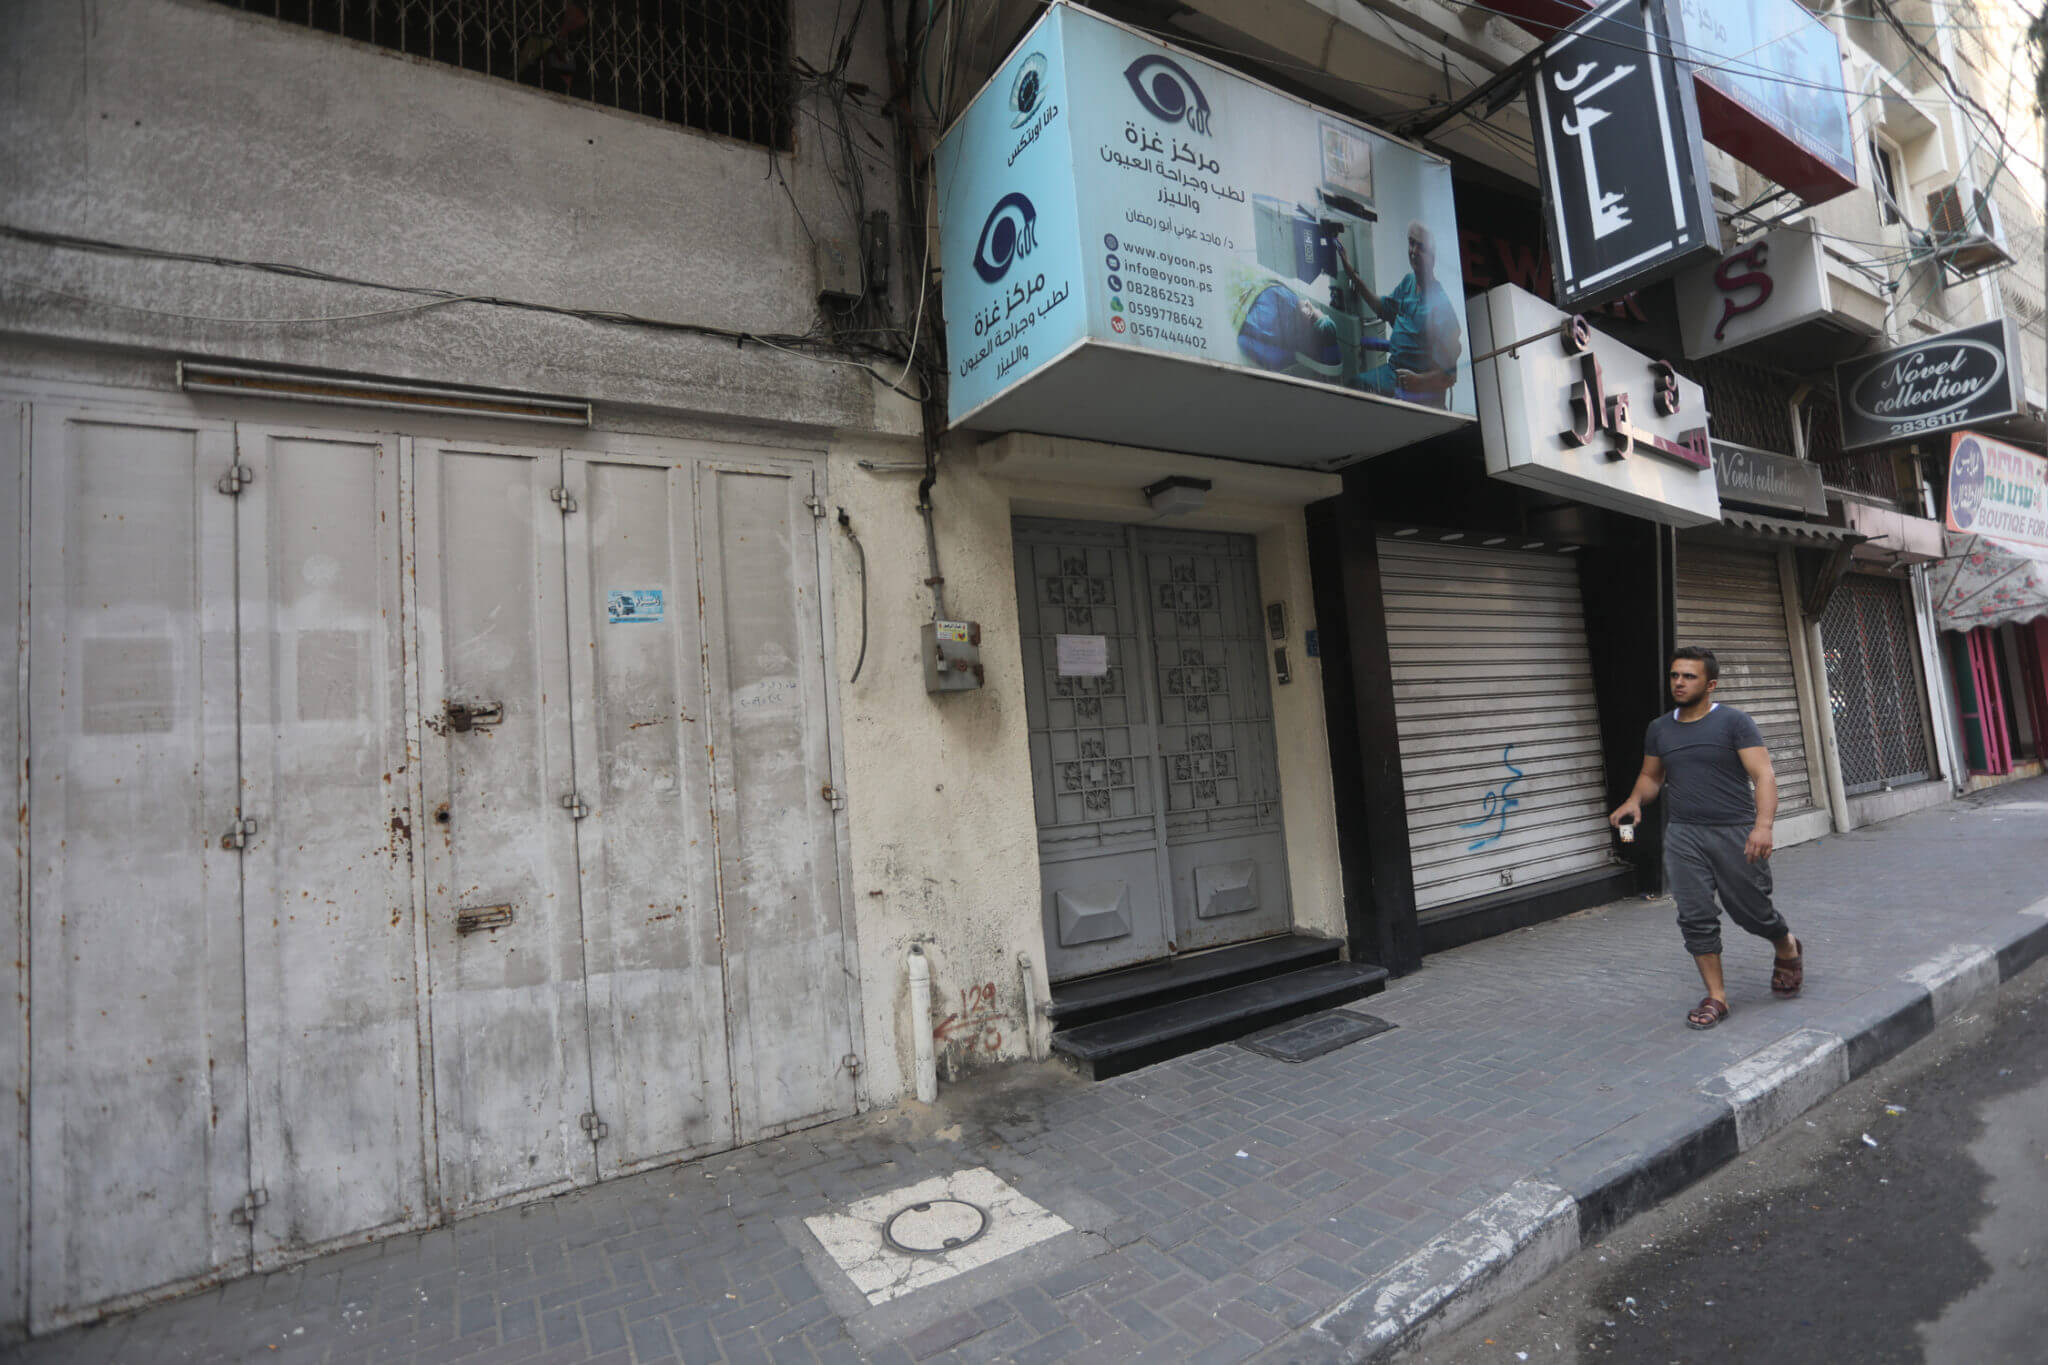 The majority of shops in the Gaza Strip are closed